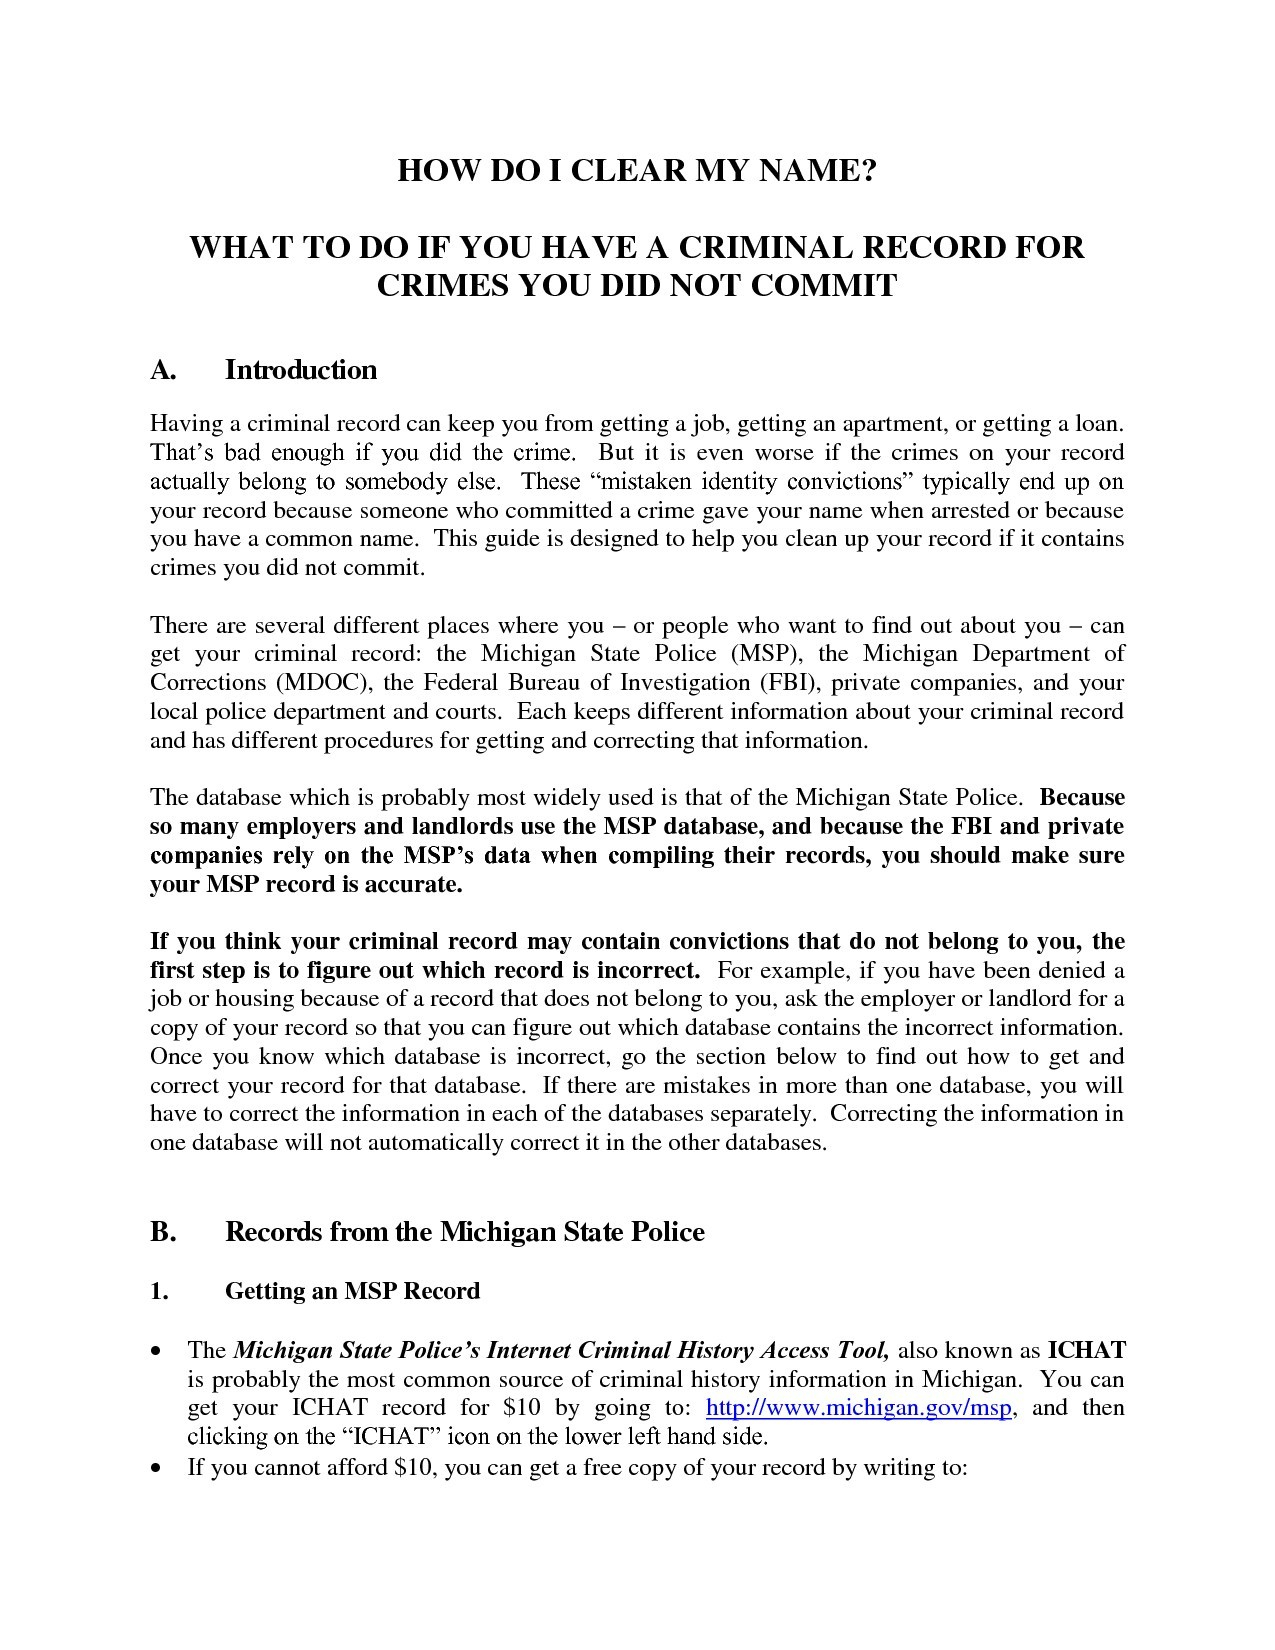 Criminal Record Disclosure Letter Template - Sample Police Clearance Certificate From India Best Lovely